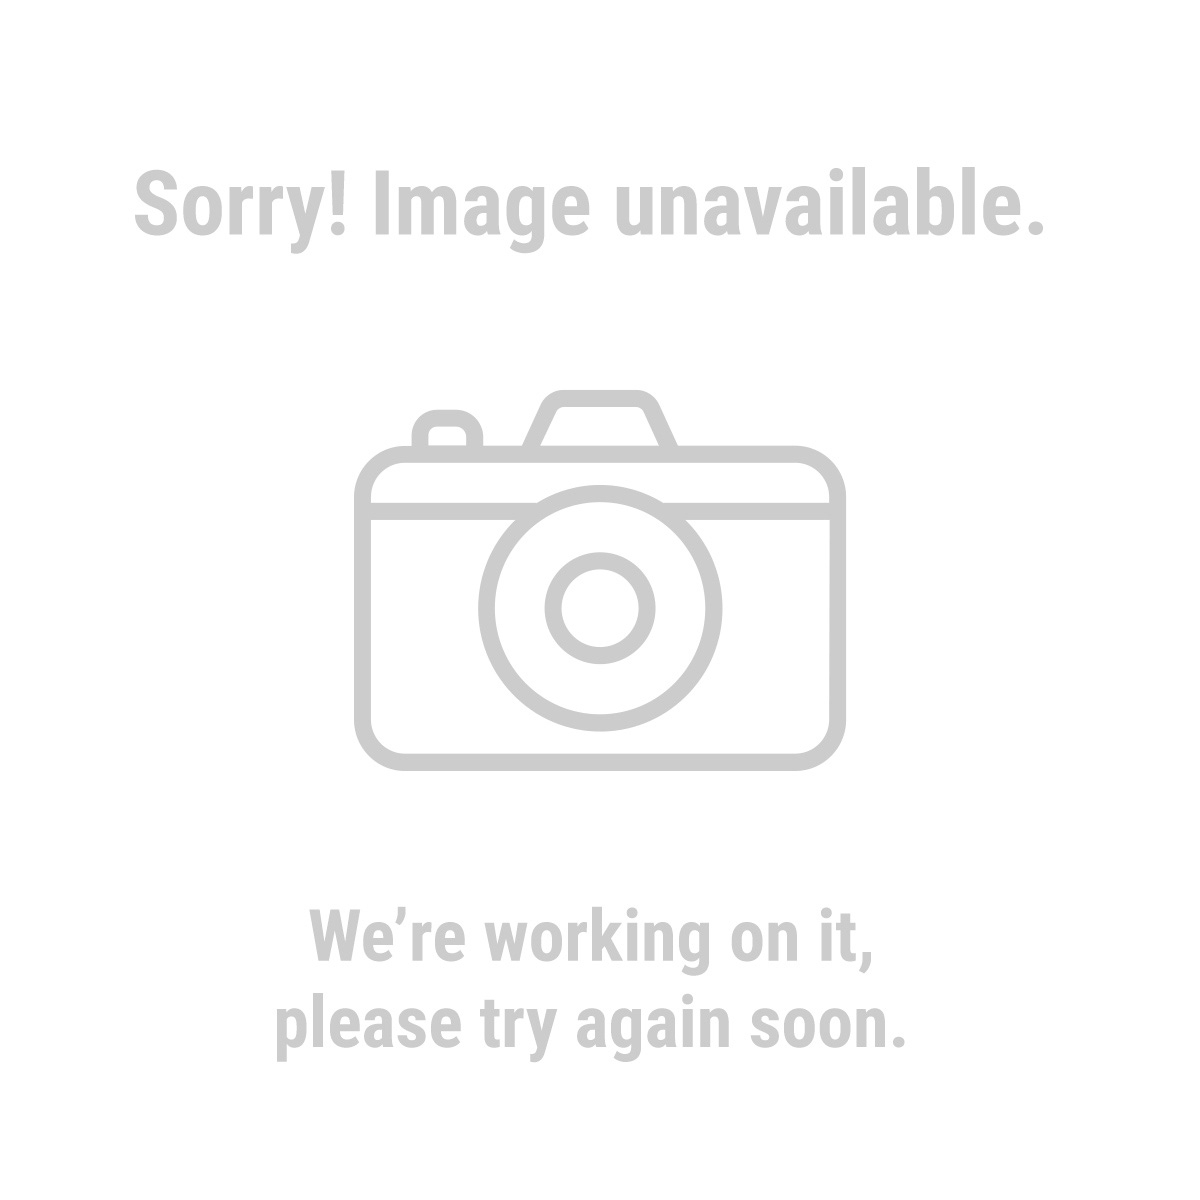 Chicago Electric Welding 45193 Split Leather Welding Apron